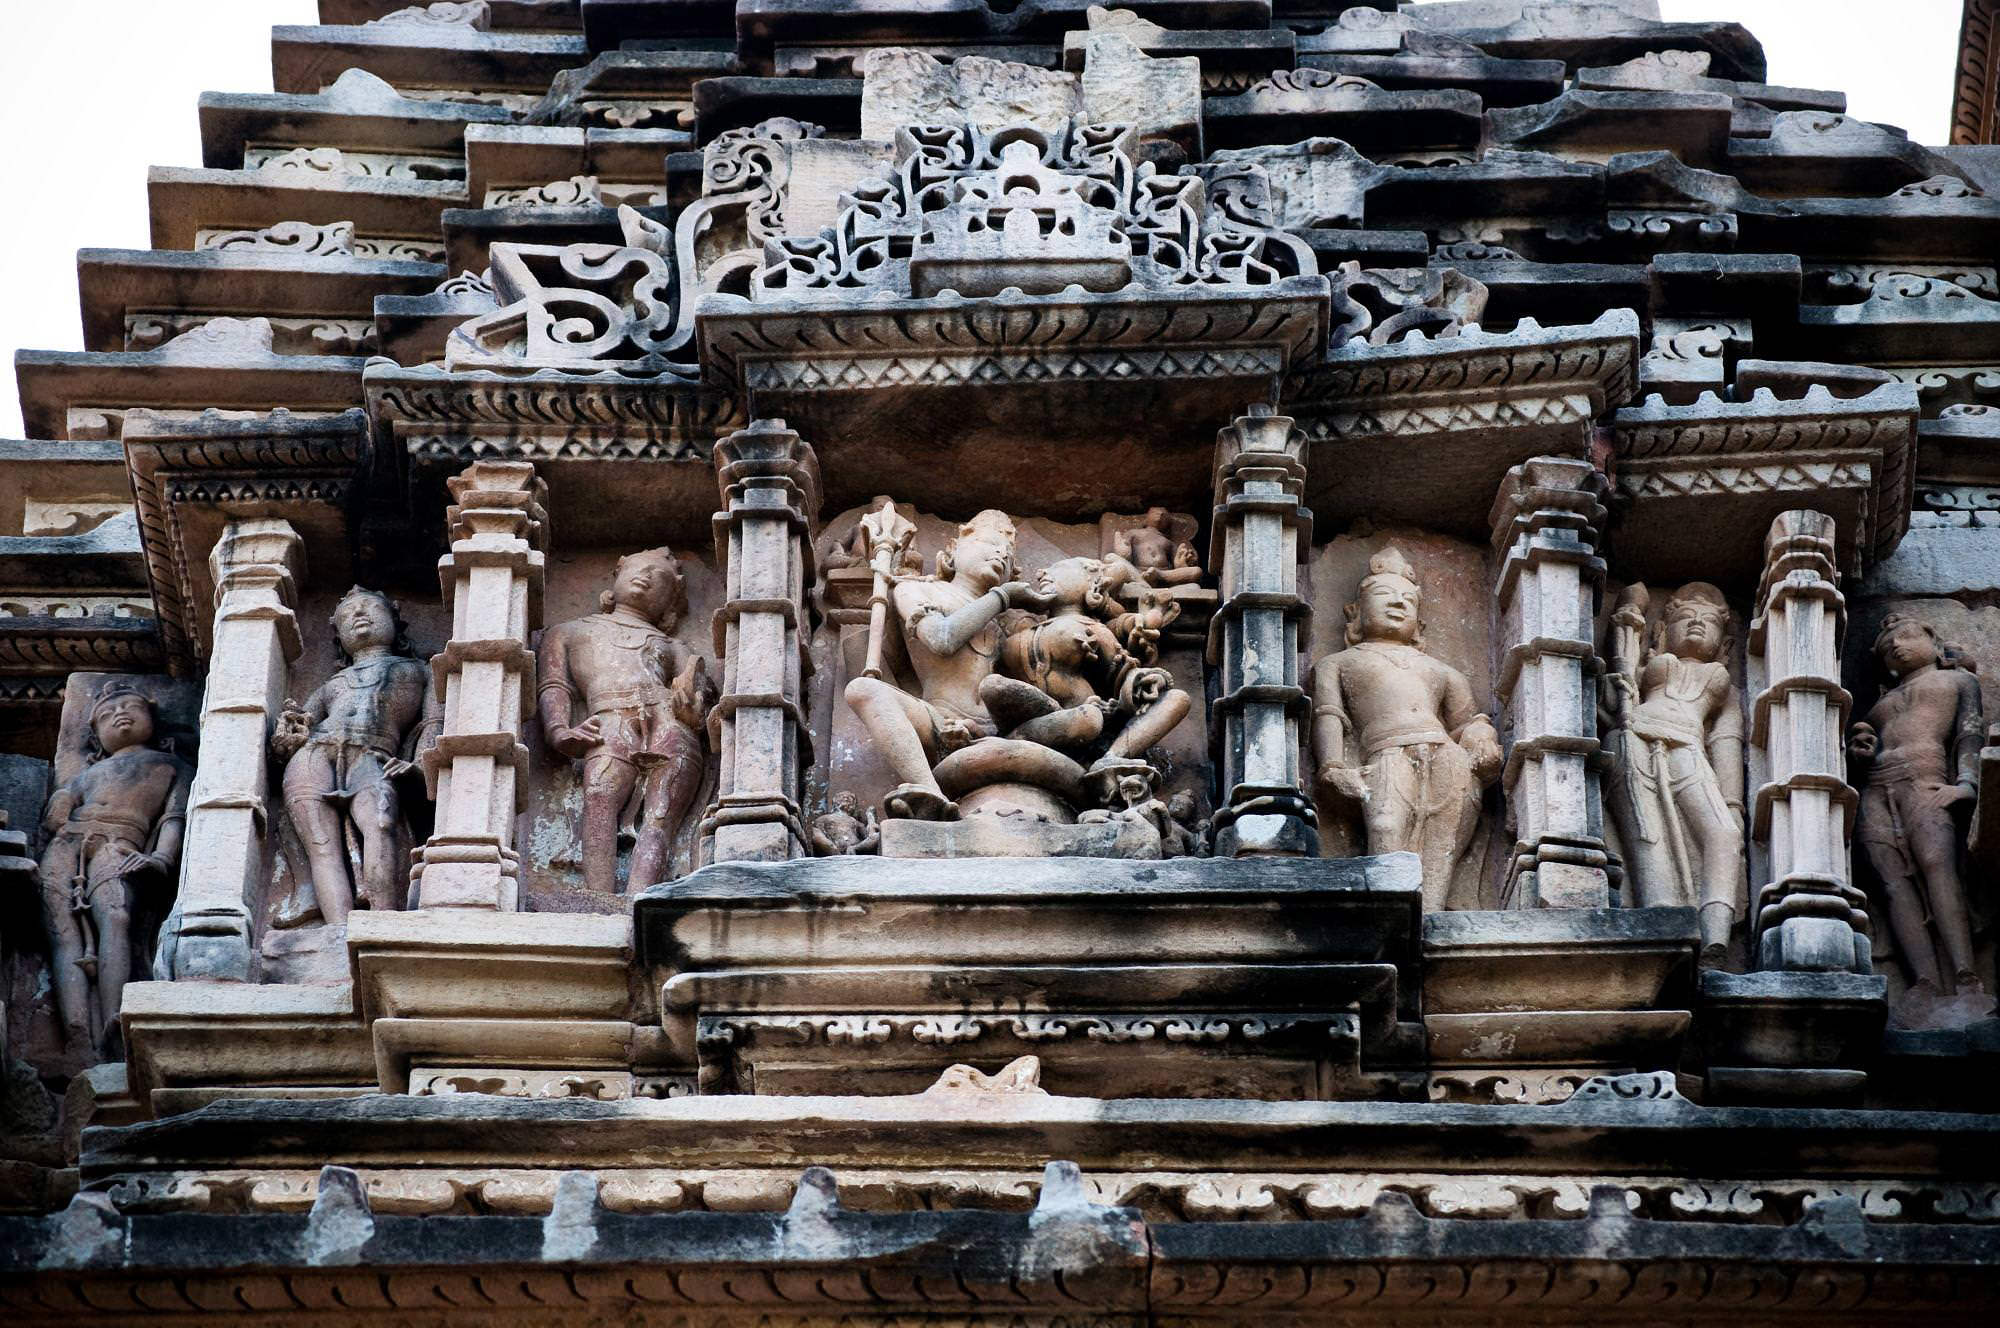 Sculptures at Khajuraho